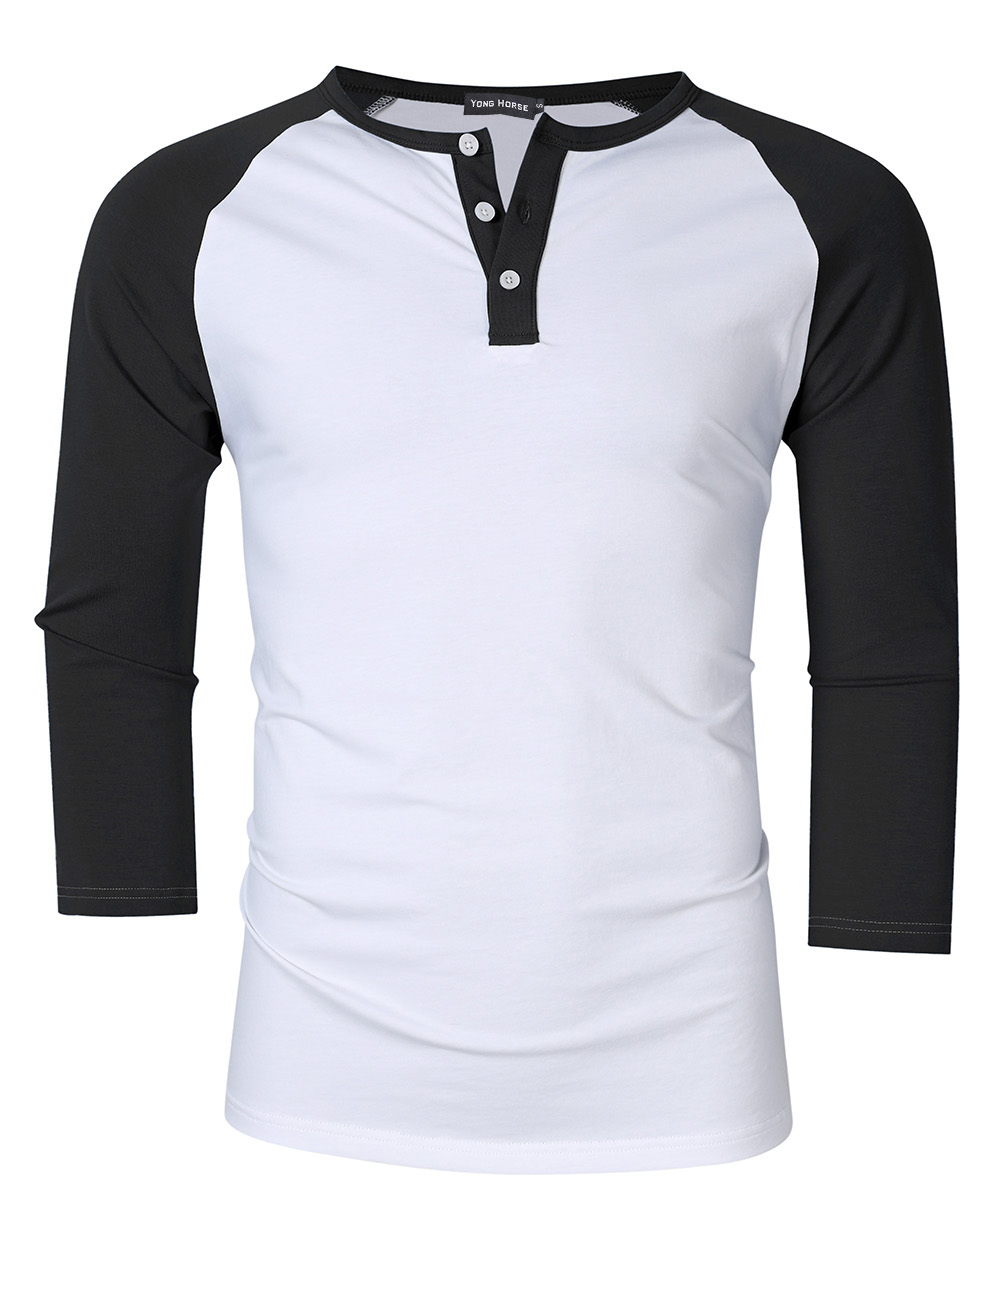 [US Direct] Yong Horse Men's Casual Slim Fit Baseball Raglan 3/4 Sleeve Henley Shirt White-black_S